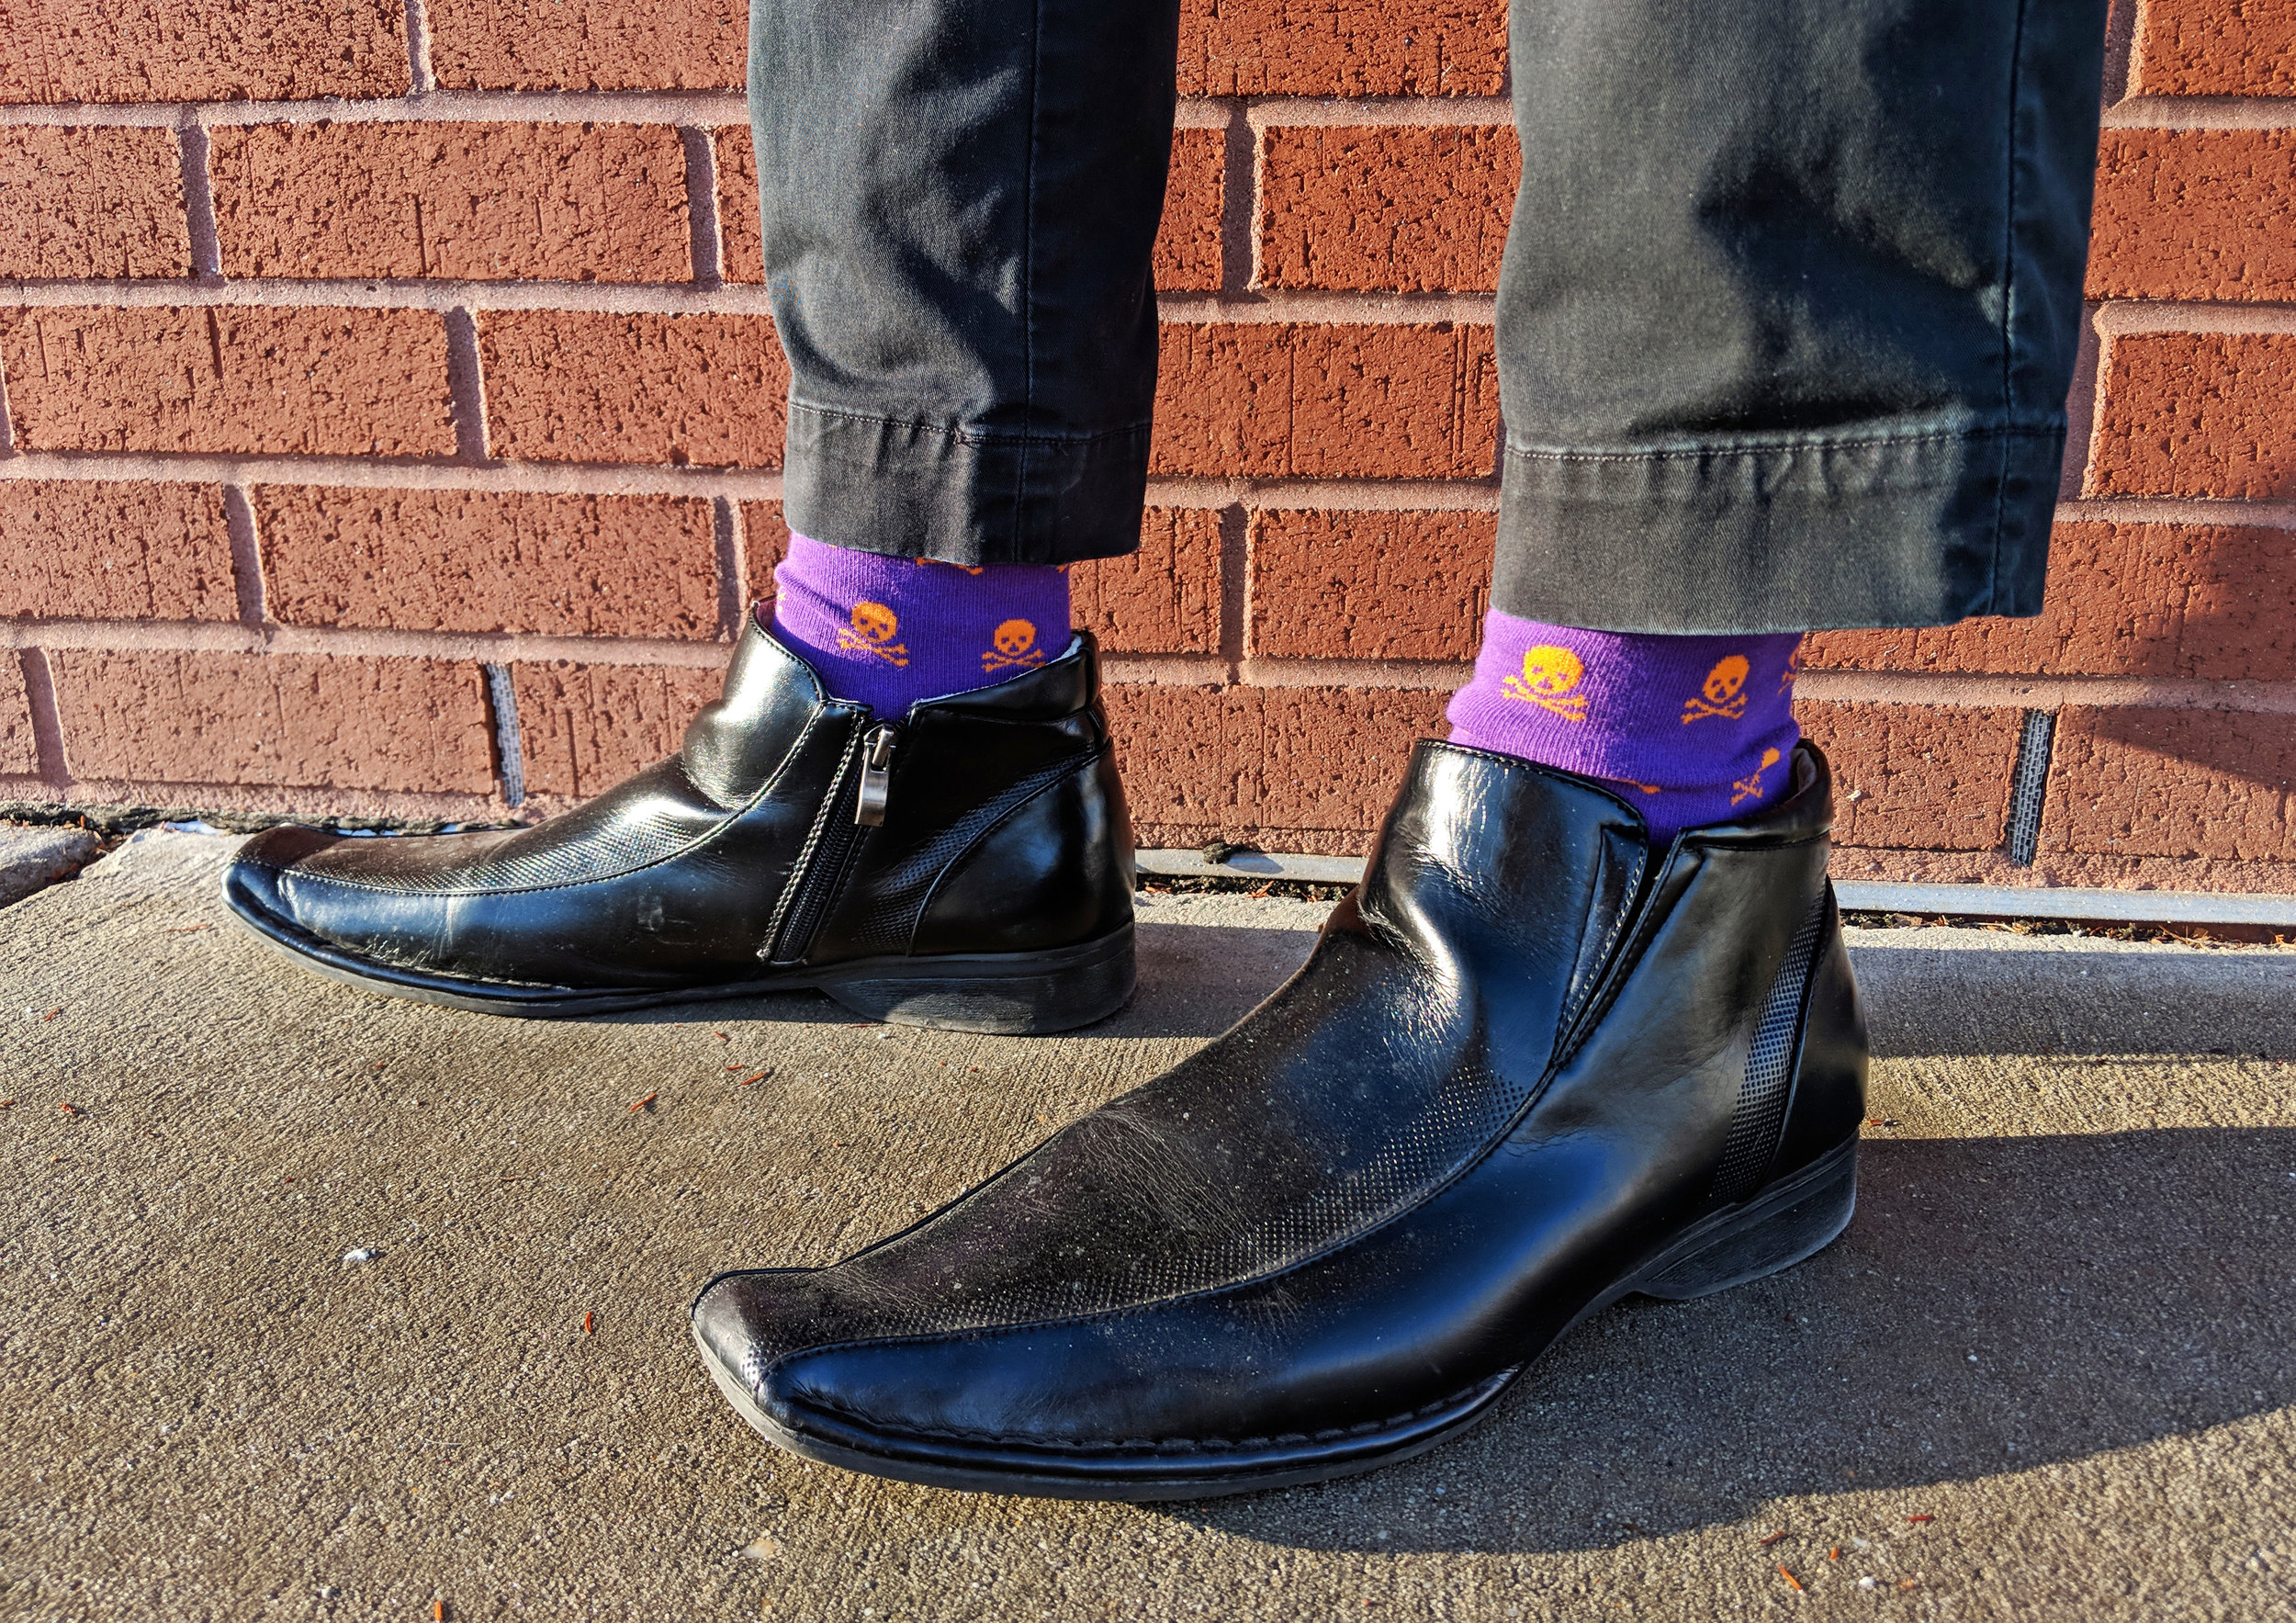 Skull n' bones pictured here, click photo to shop - Photo Credit: The Sock Review